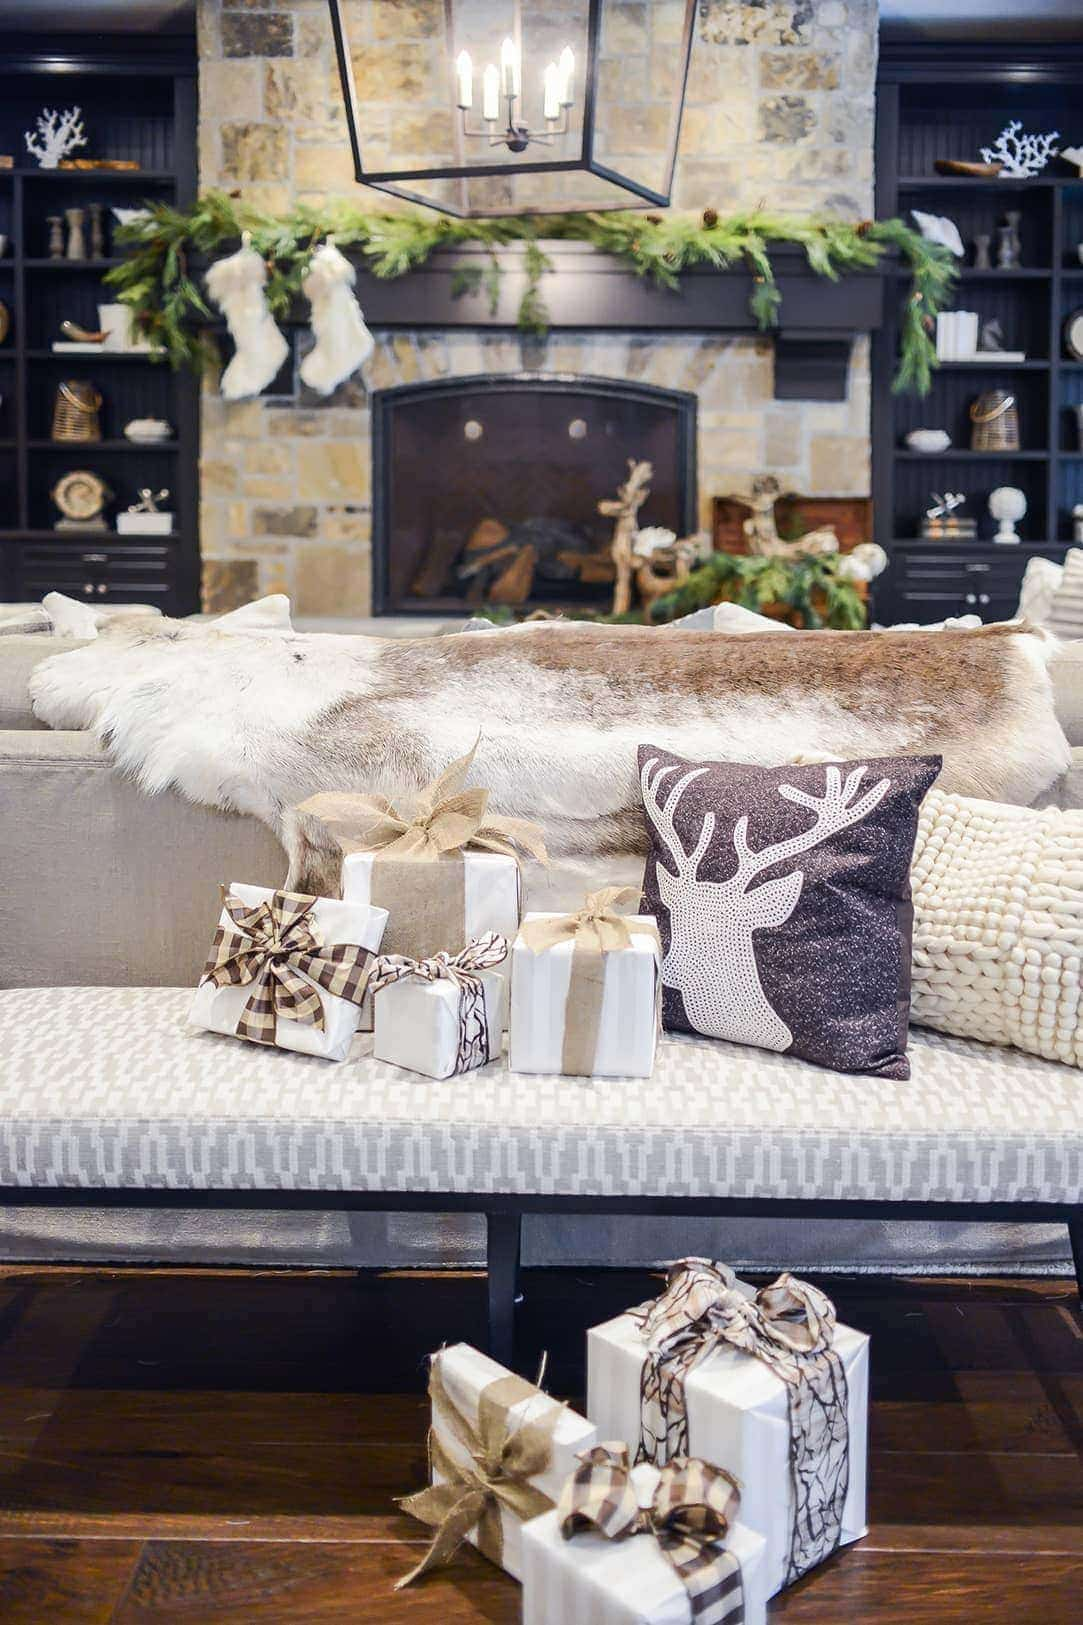 HOME FOR THE HOLIDAYS: Every detail was considered by Duclos, including beautifully wrapped gifts.